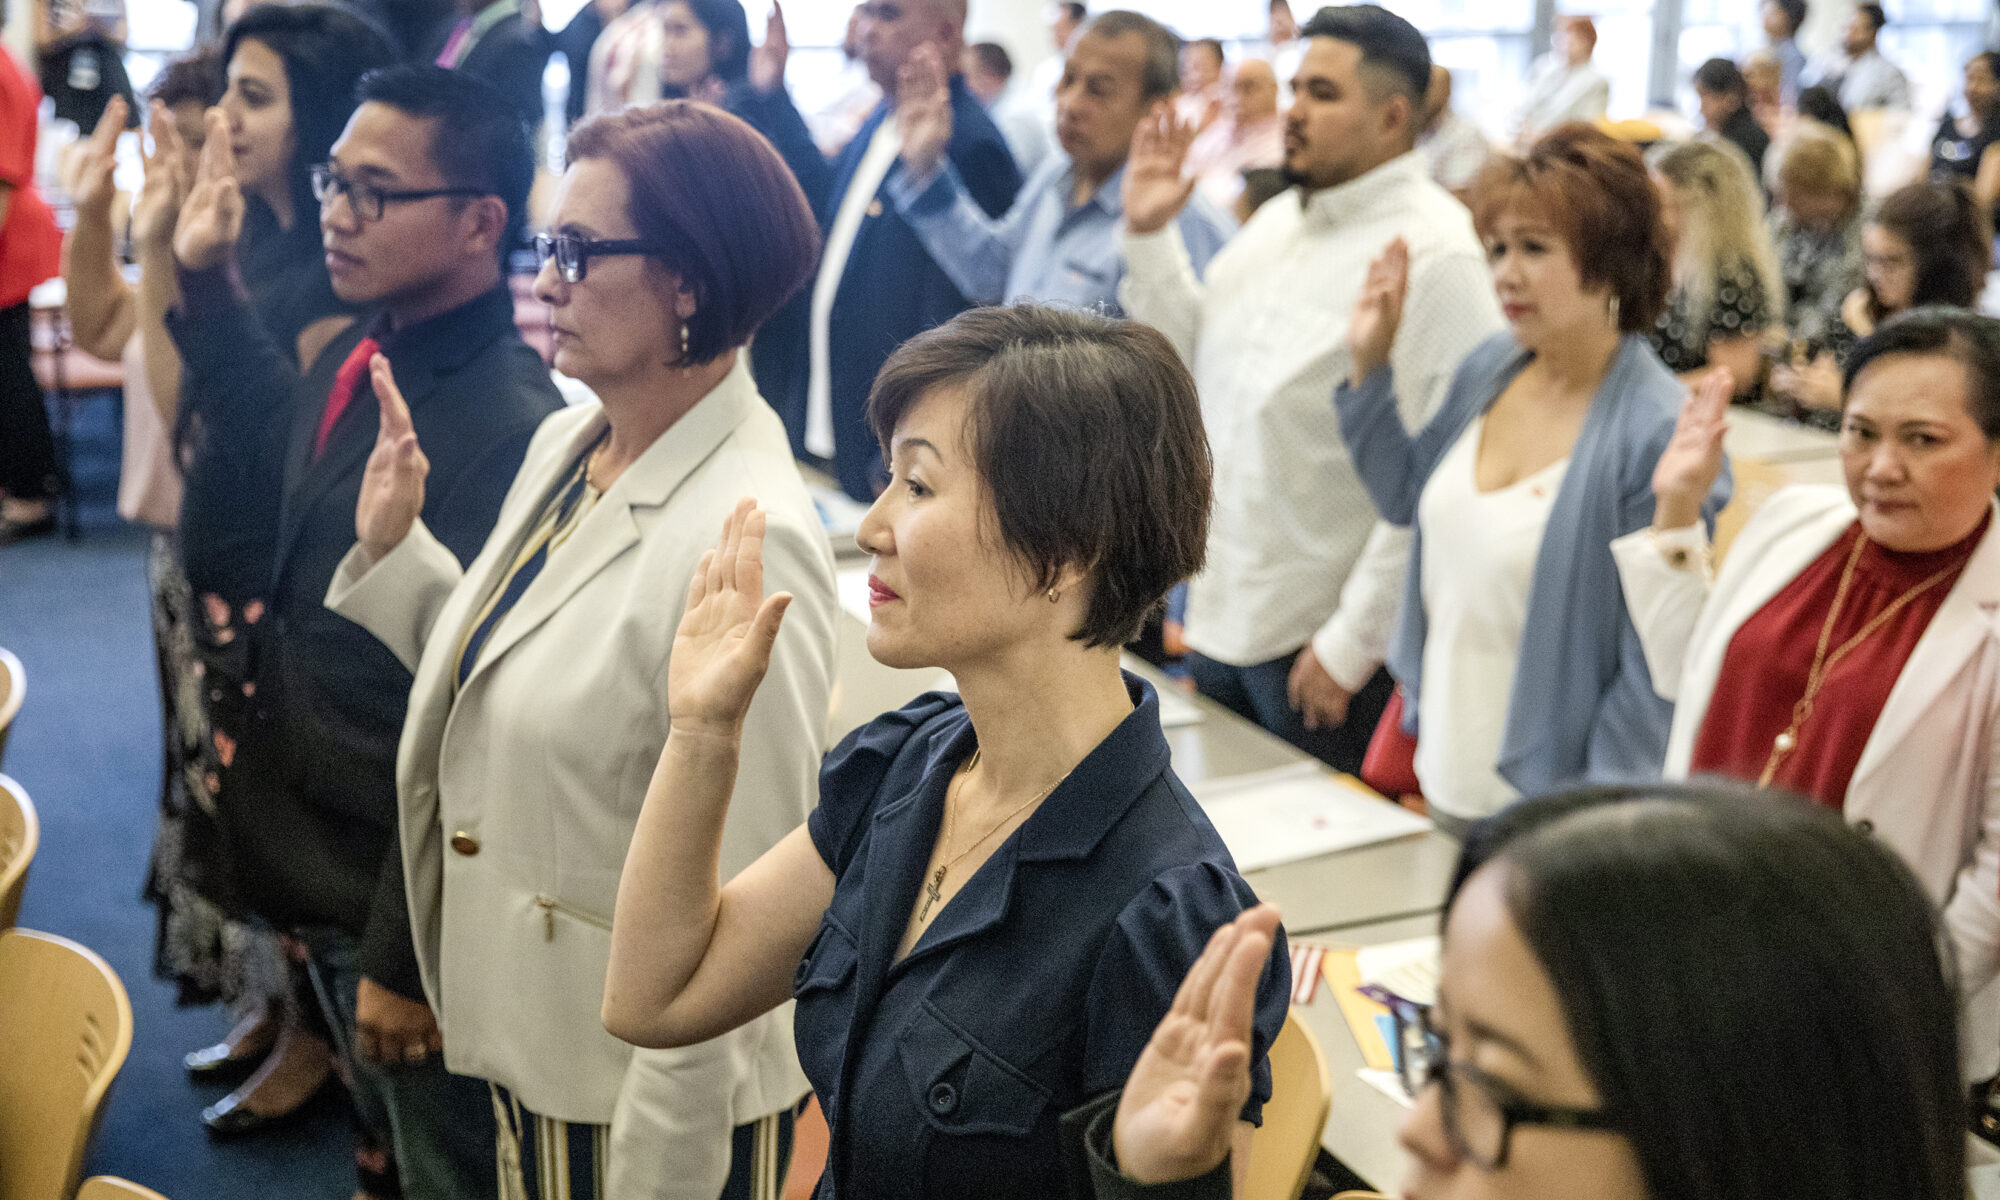 Immigrants from around the globe celebrate first